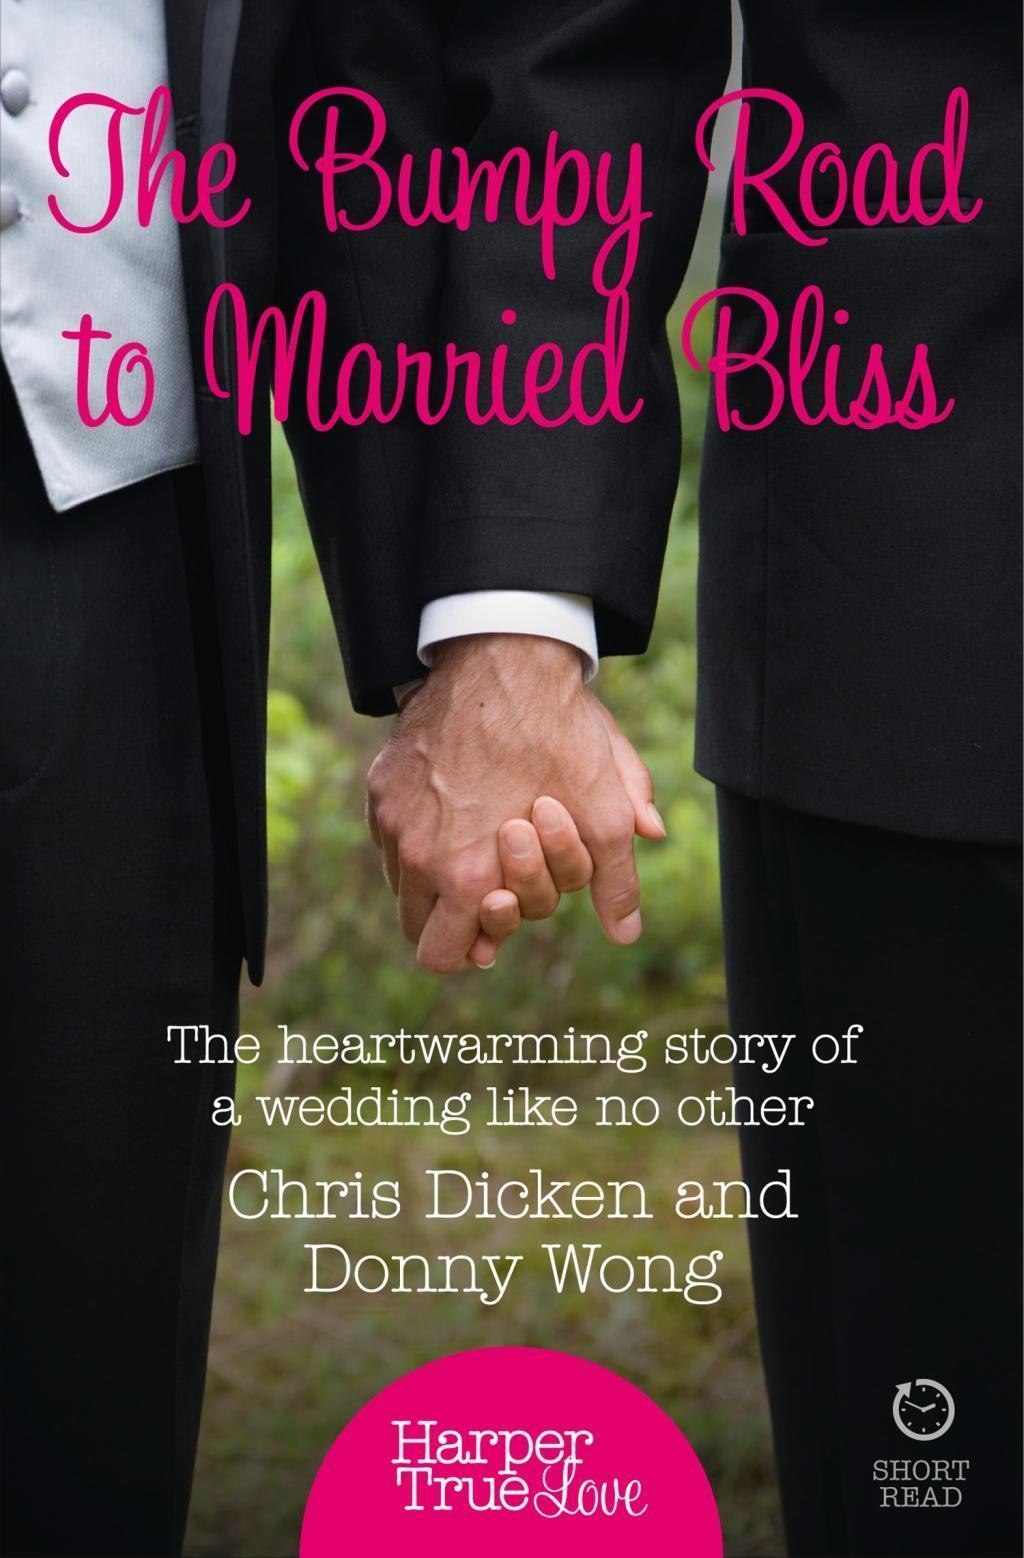 The Bumpy Road to Married Bliss (HarperTrue Love - A Short Read)